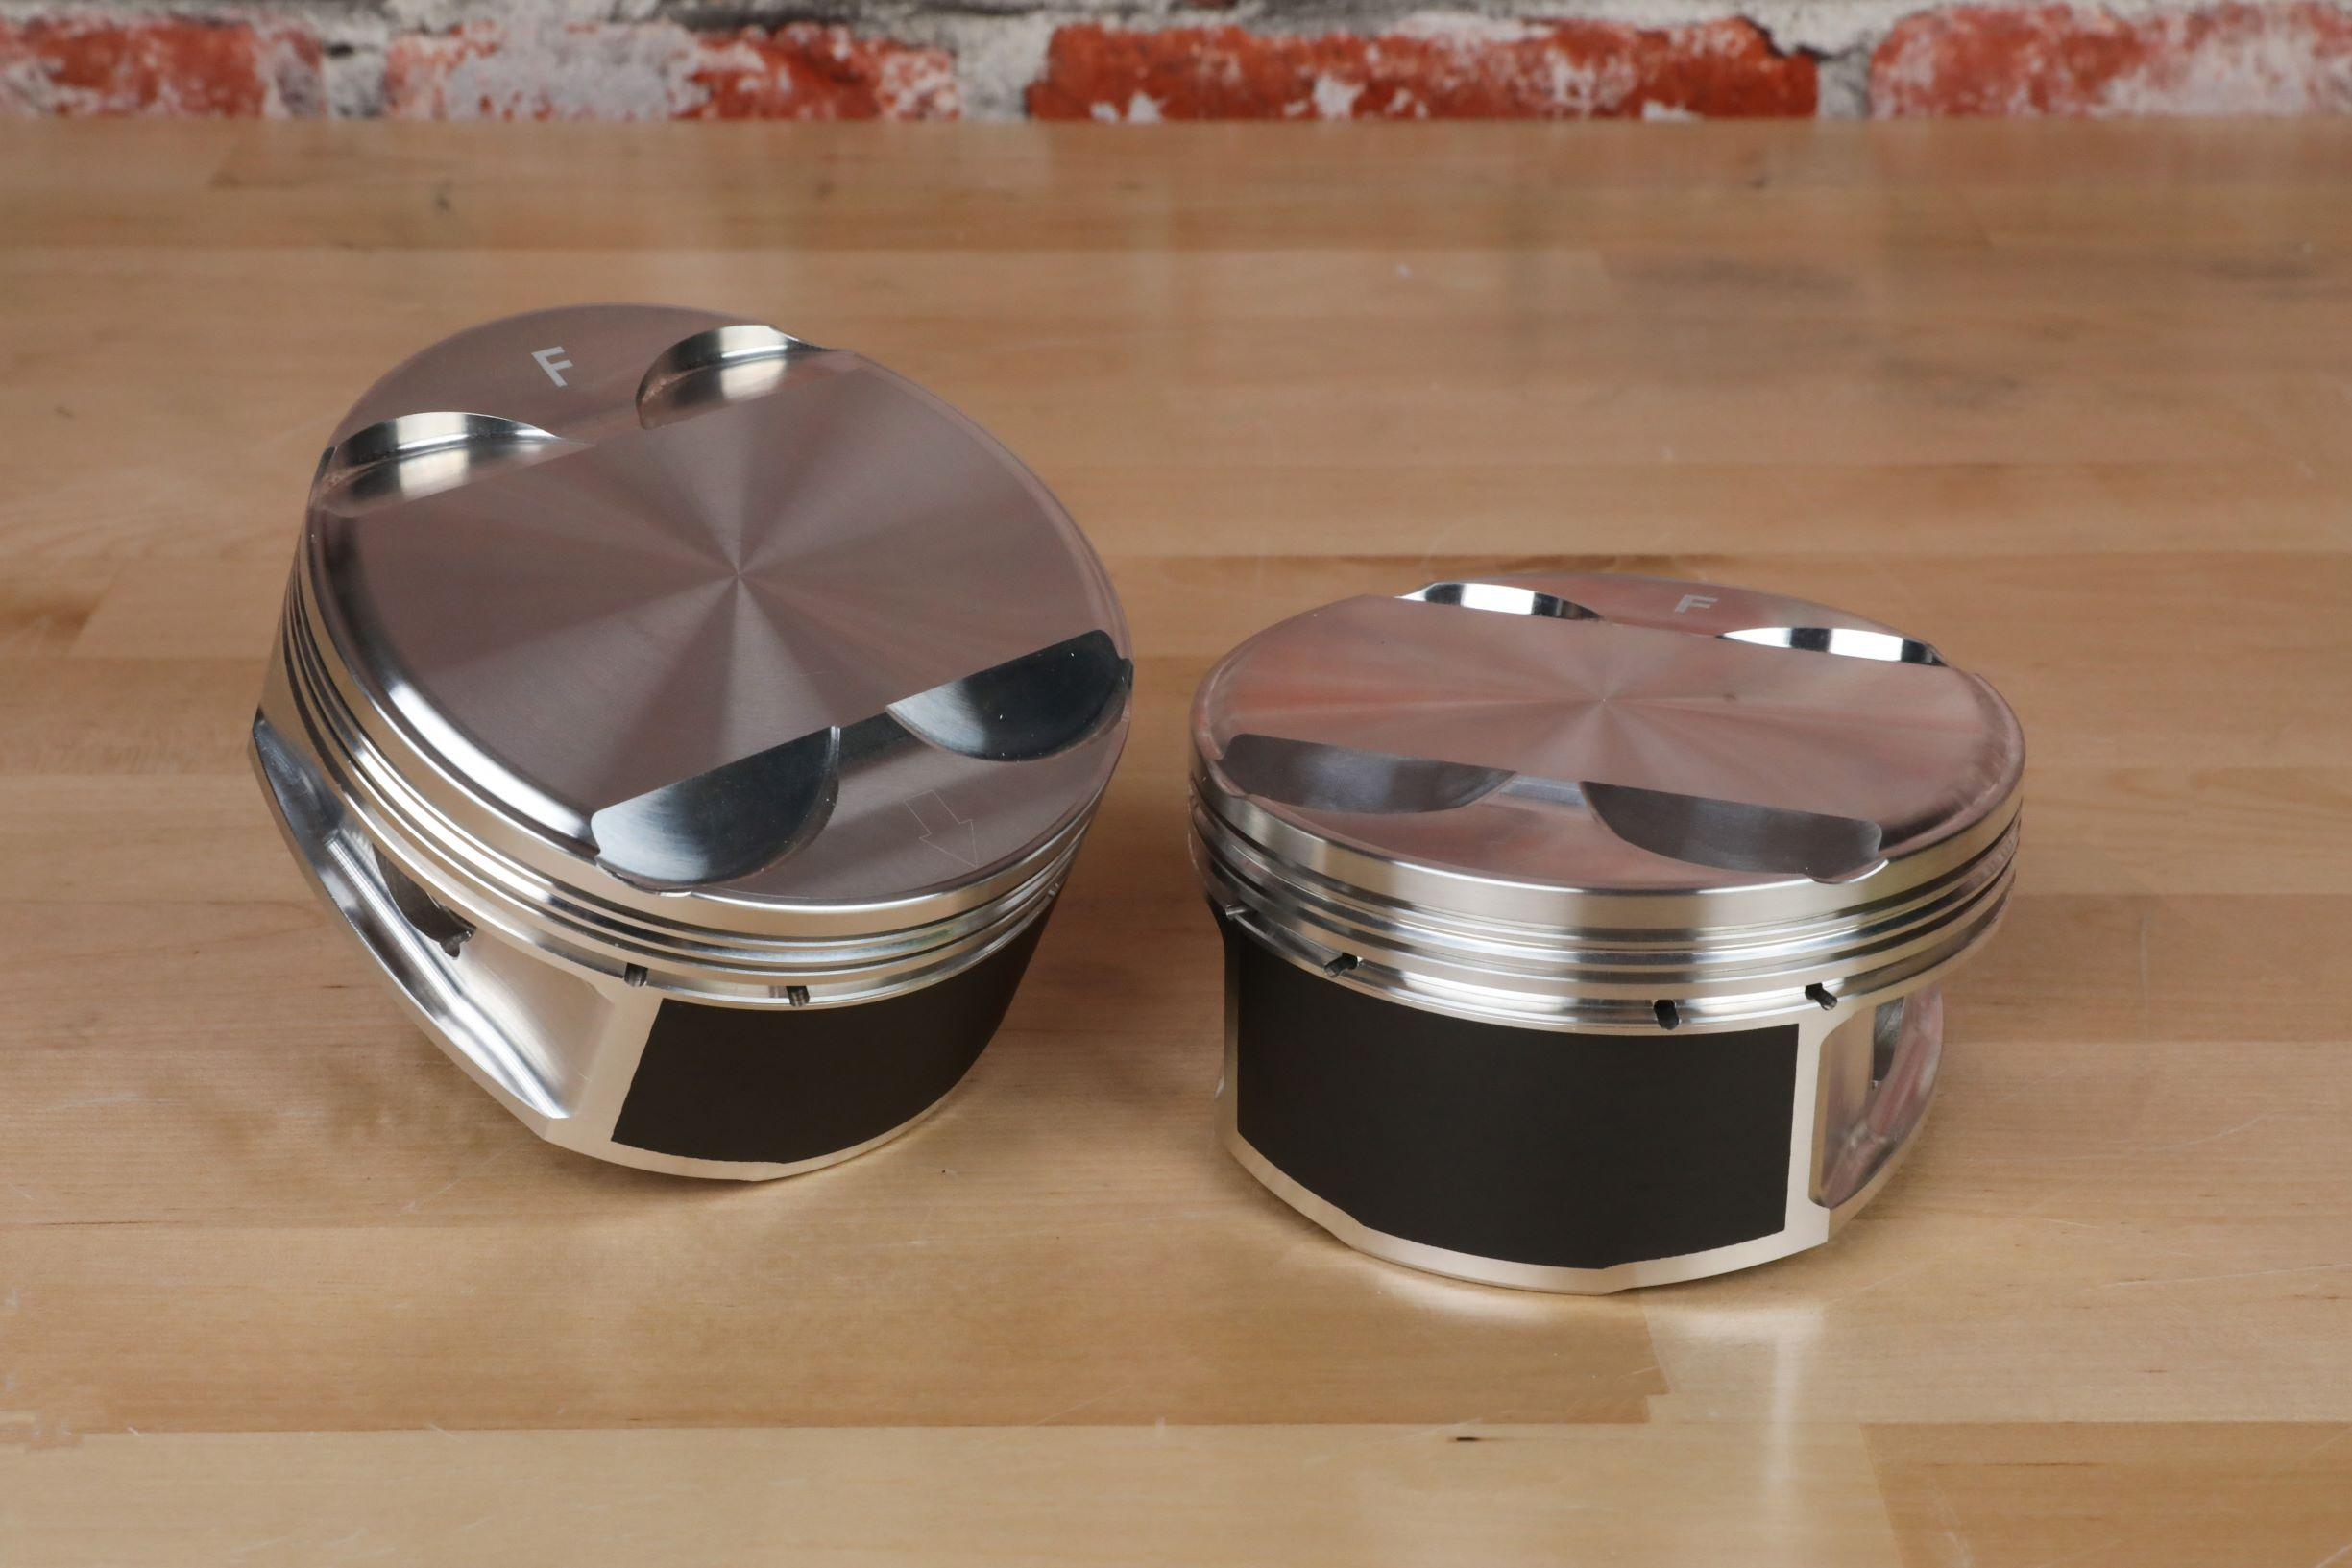 V-Twin Power: Performance Forged Pistons for Harley-Davidson Milwaukee-8 Engines